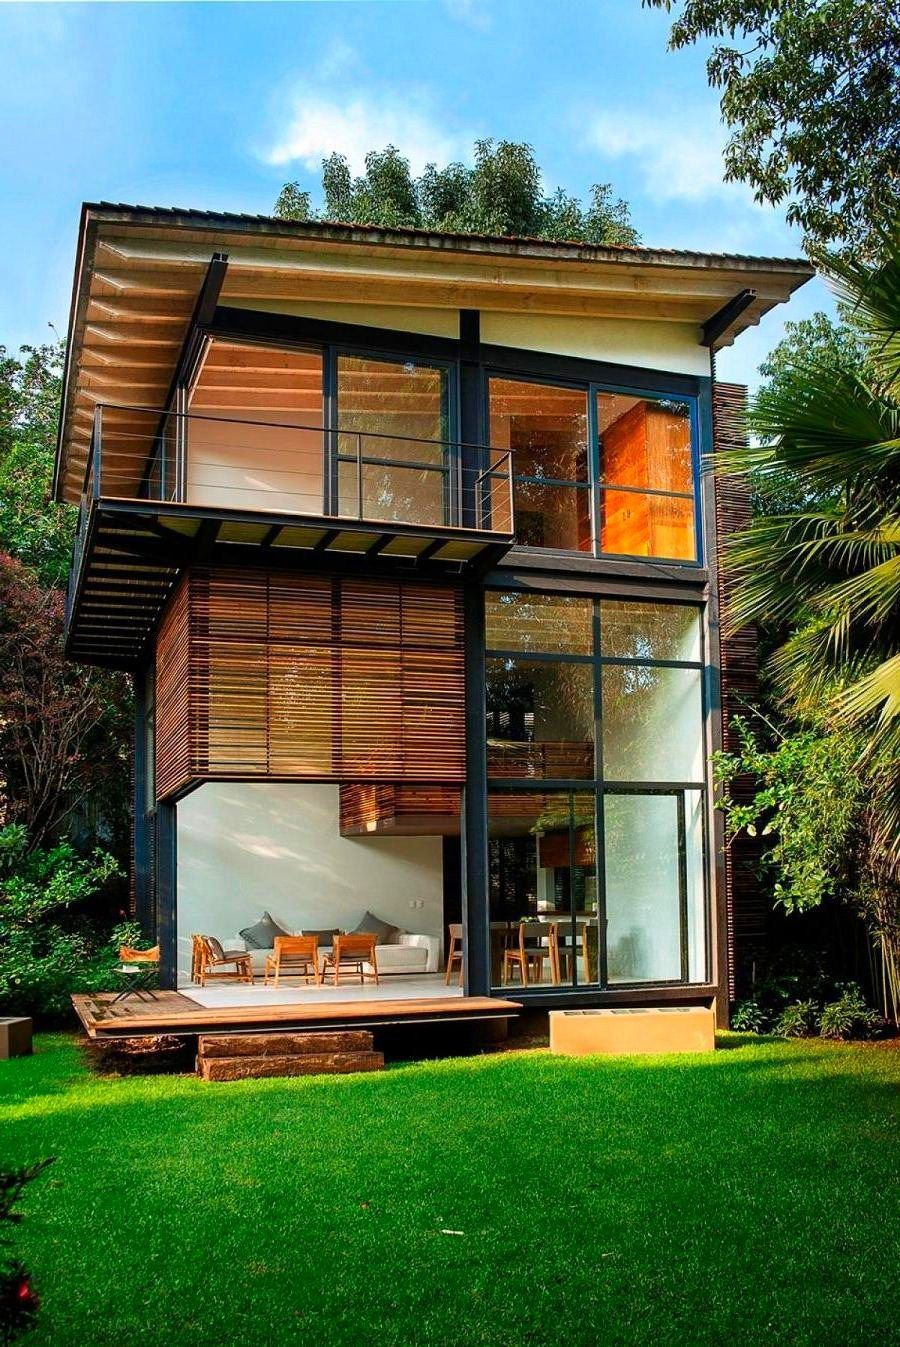 New Small Home Designs 2021 in 2020 | Wooden house design ...